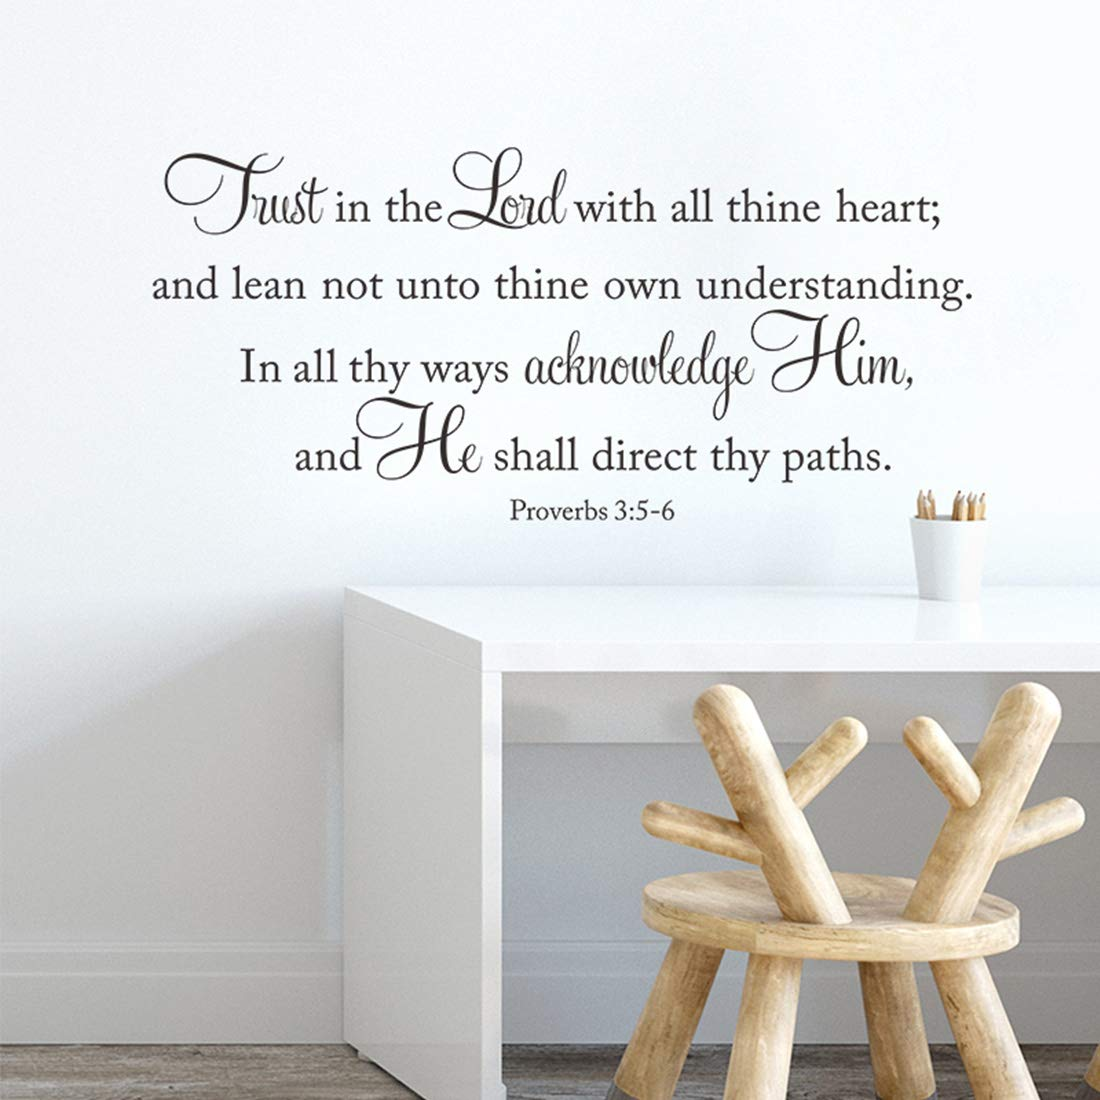 Bible Verse Scripture Inspirational Room Decor Quotes for Living Room – Trust in The Lord with All Thine Heart – Wall Decor for Bedroom Classroom Playroom Nursery